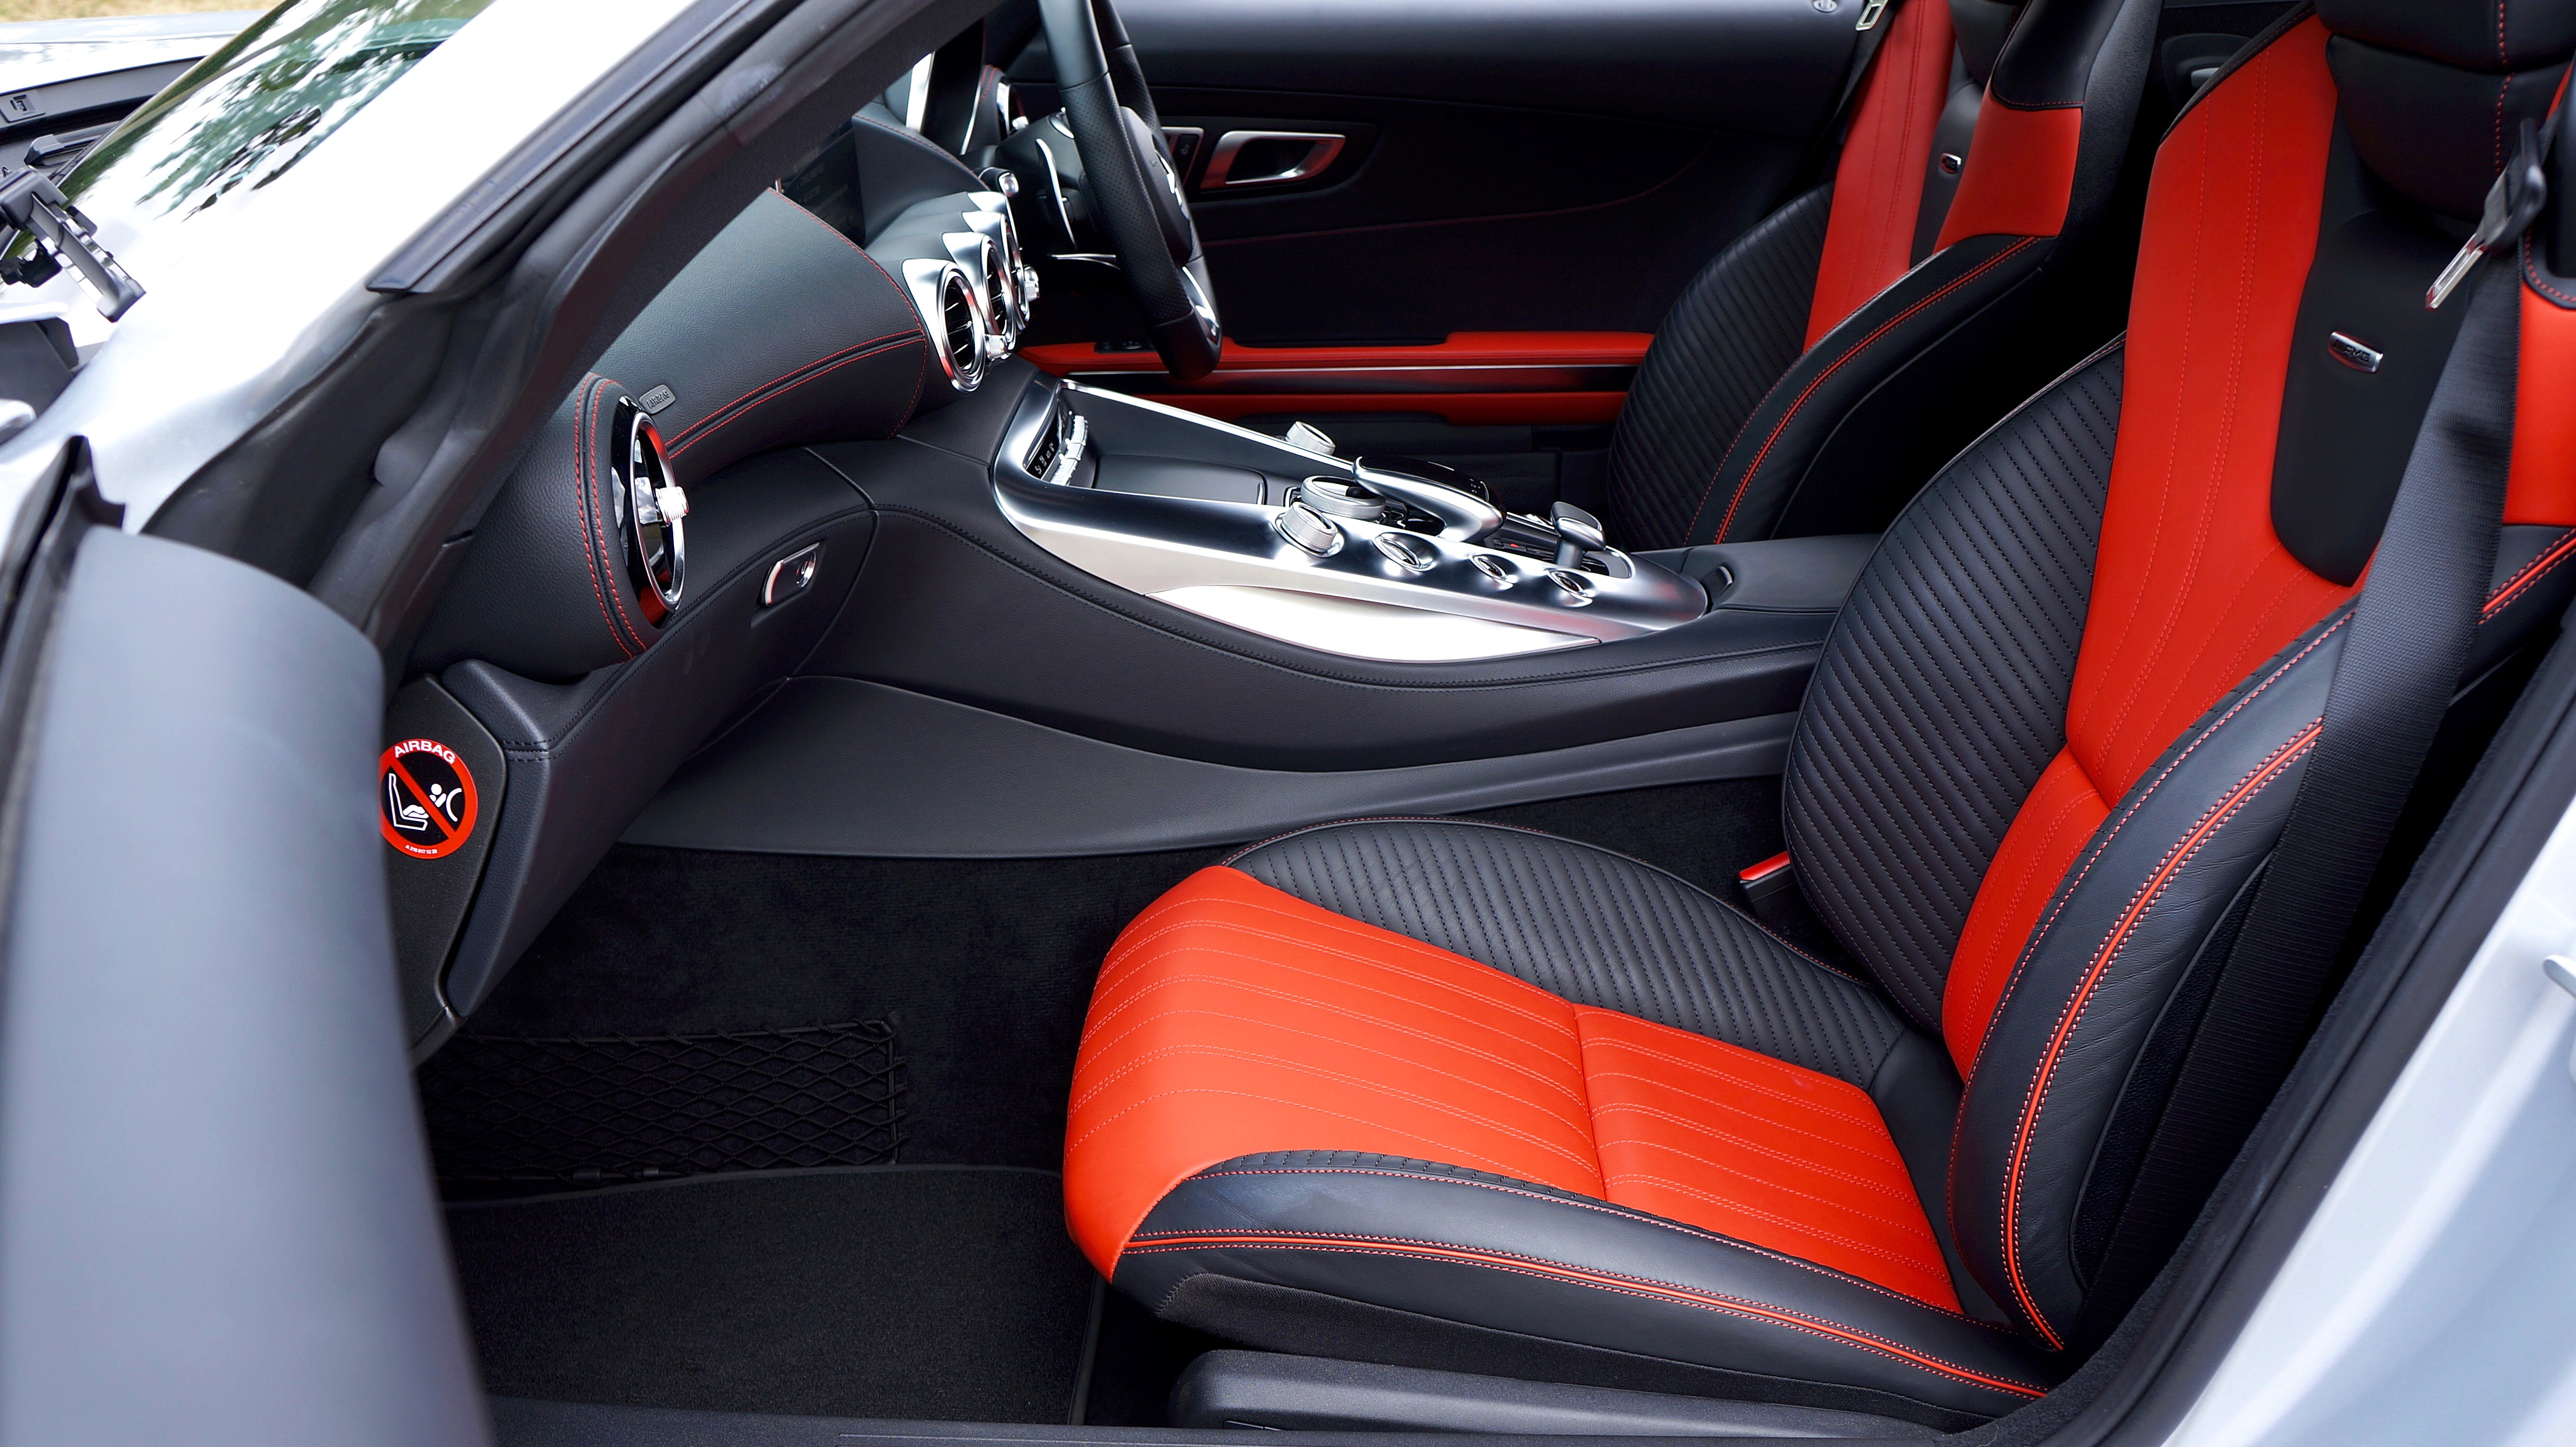 Black and Red Car Interior